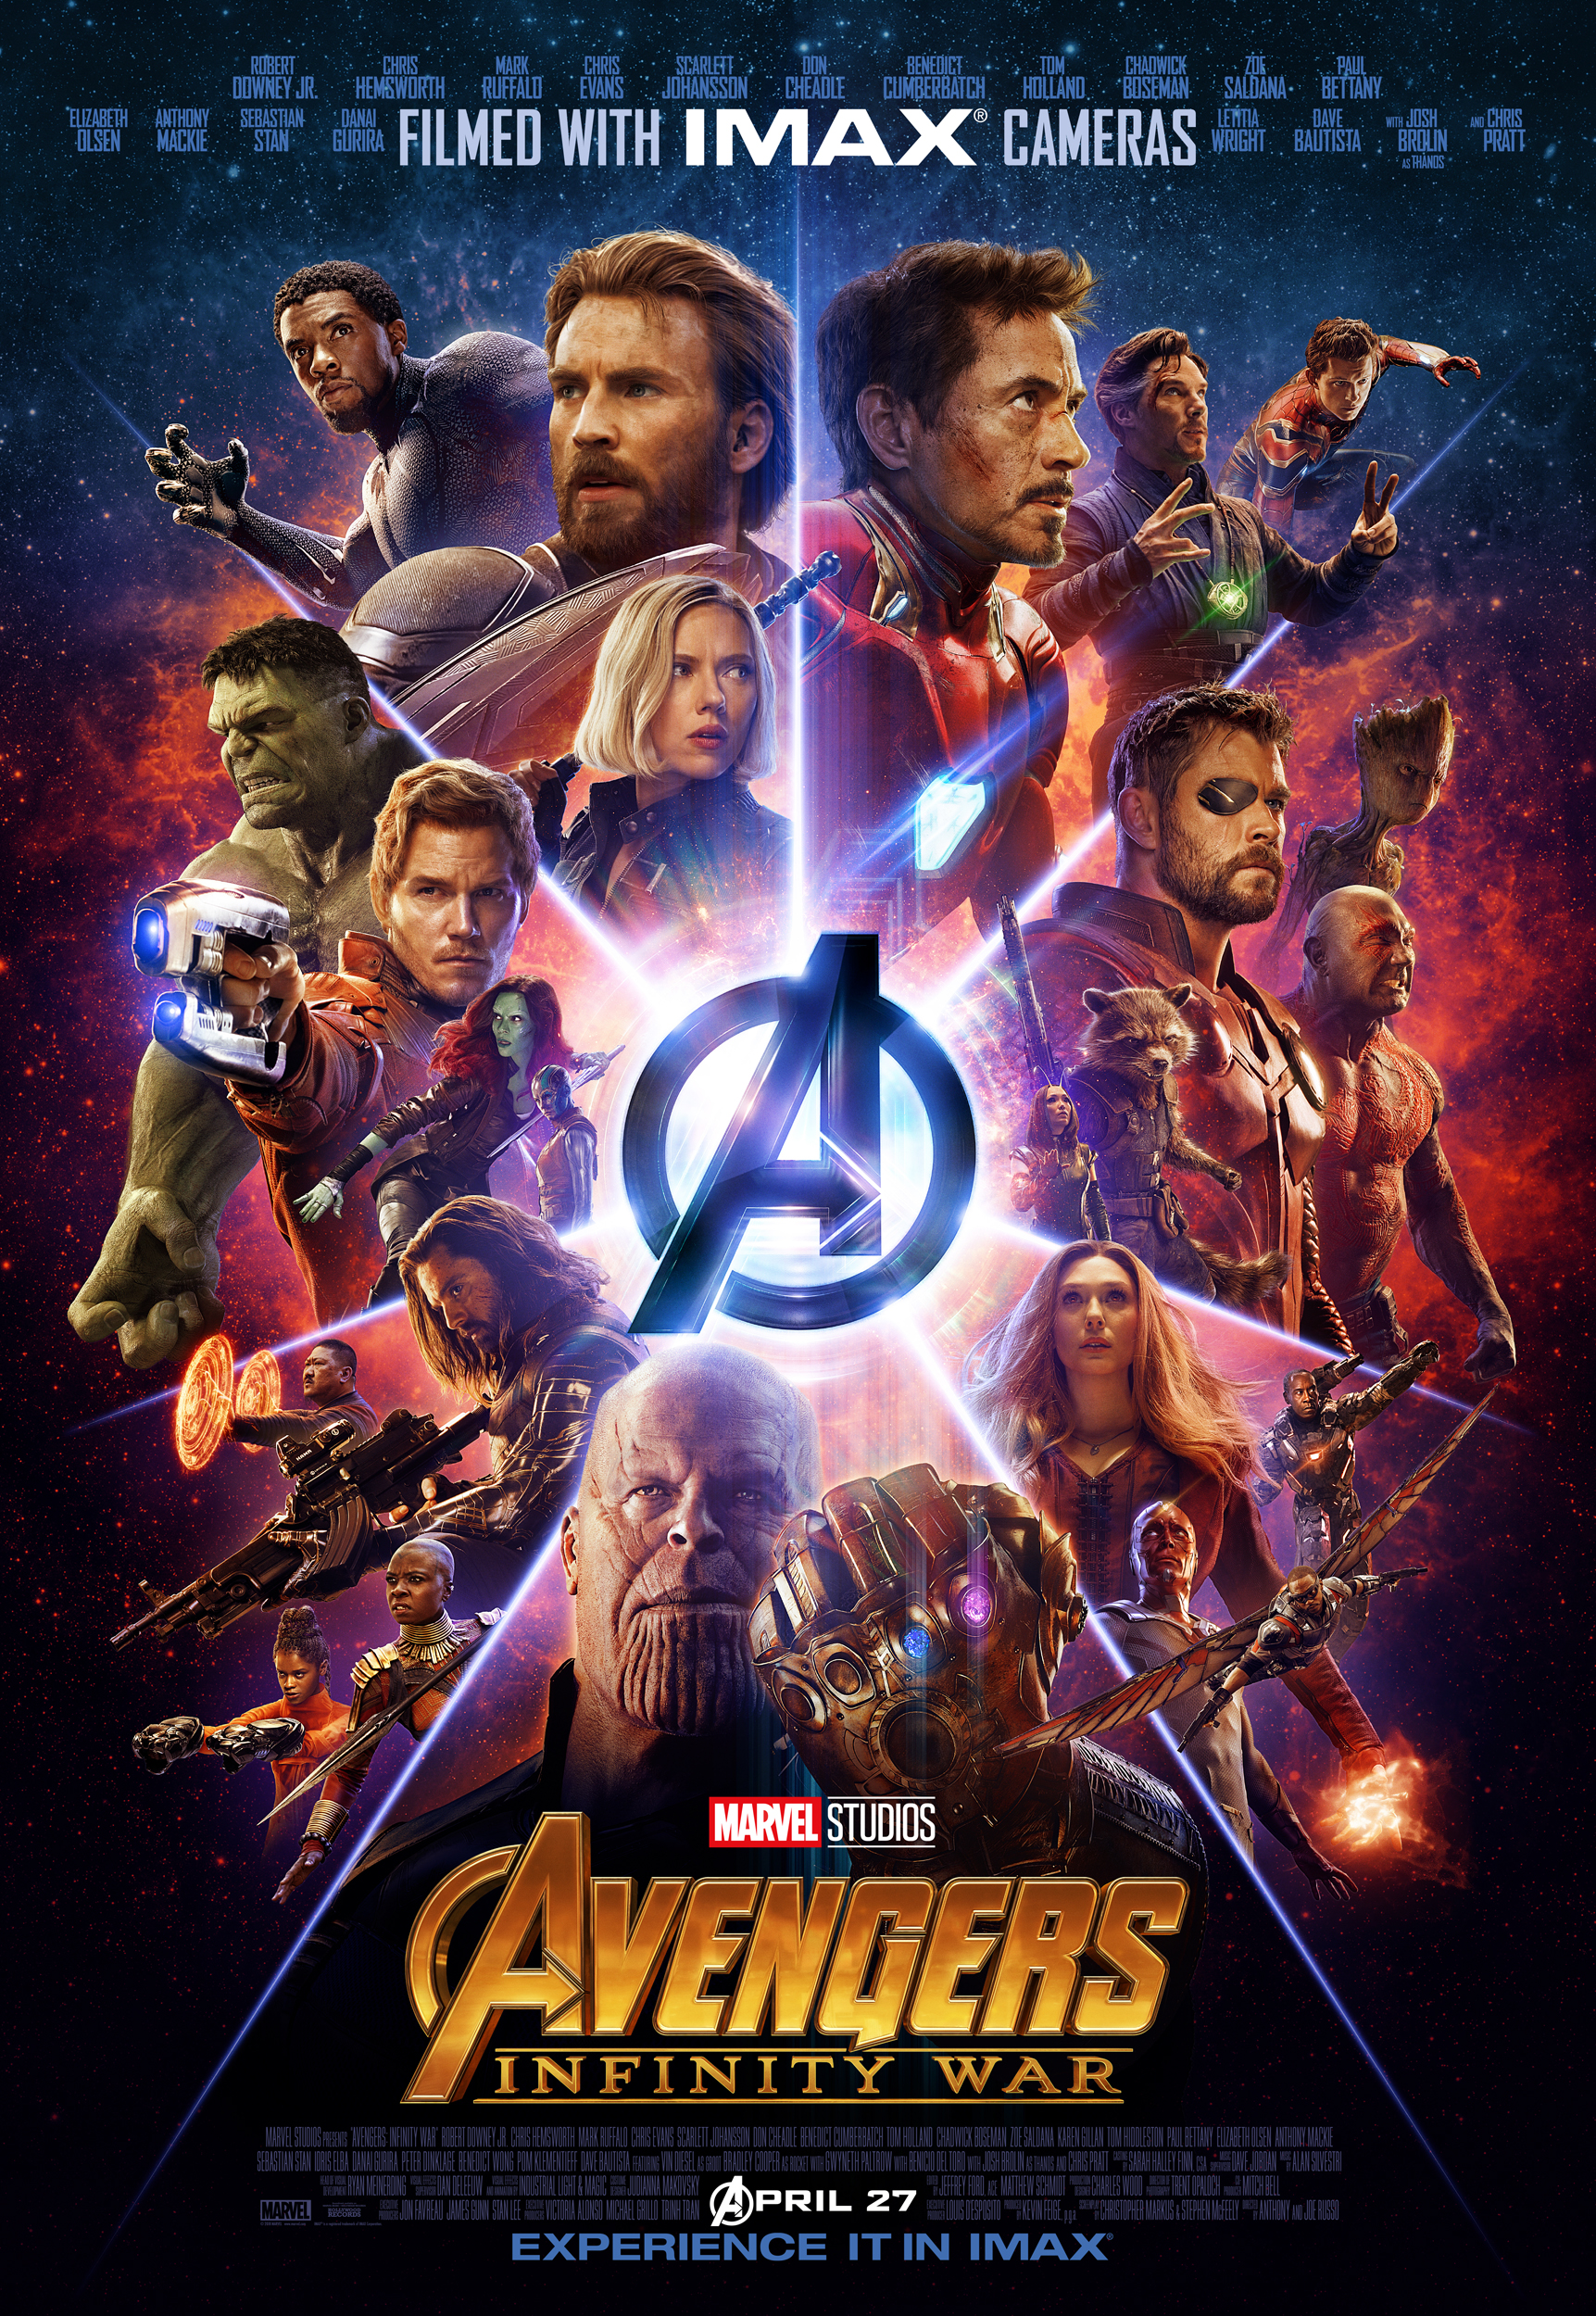 image - avengers infinity war imax poster | marvel cinematic